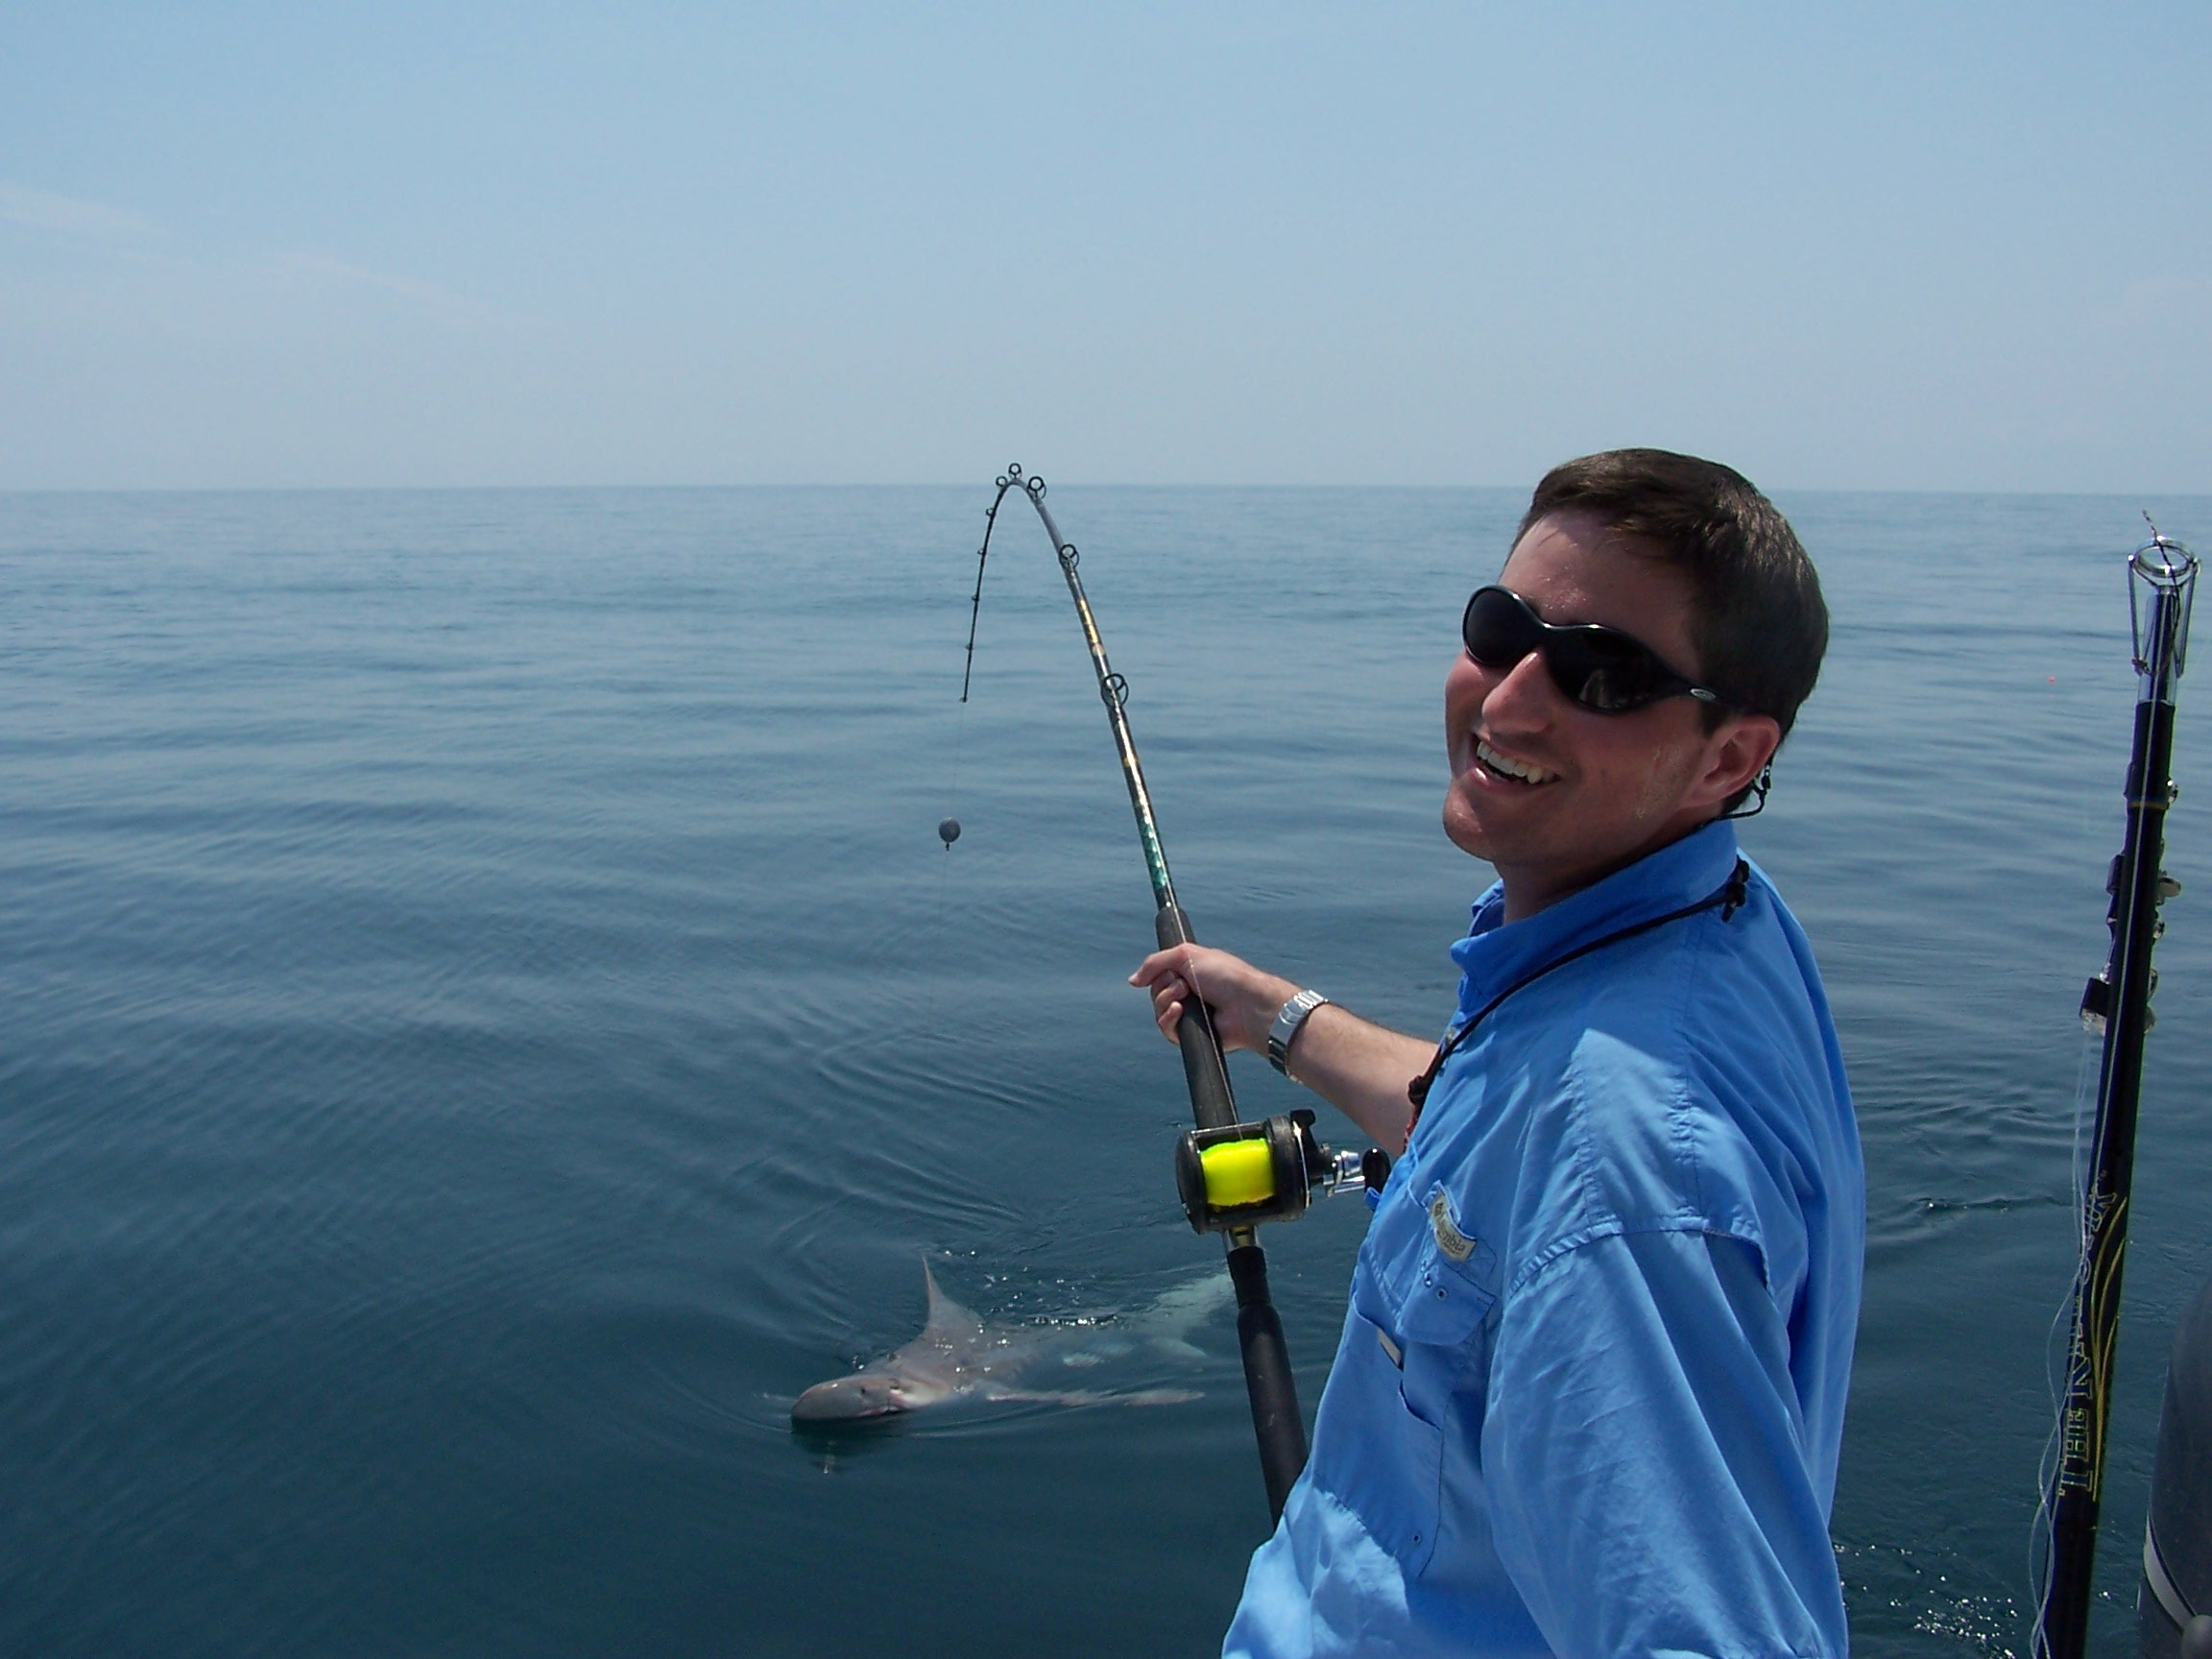 hilton head shark fishing charters 3 hour shark fishing